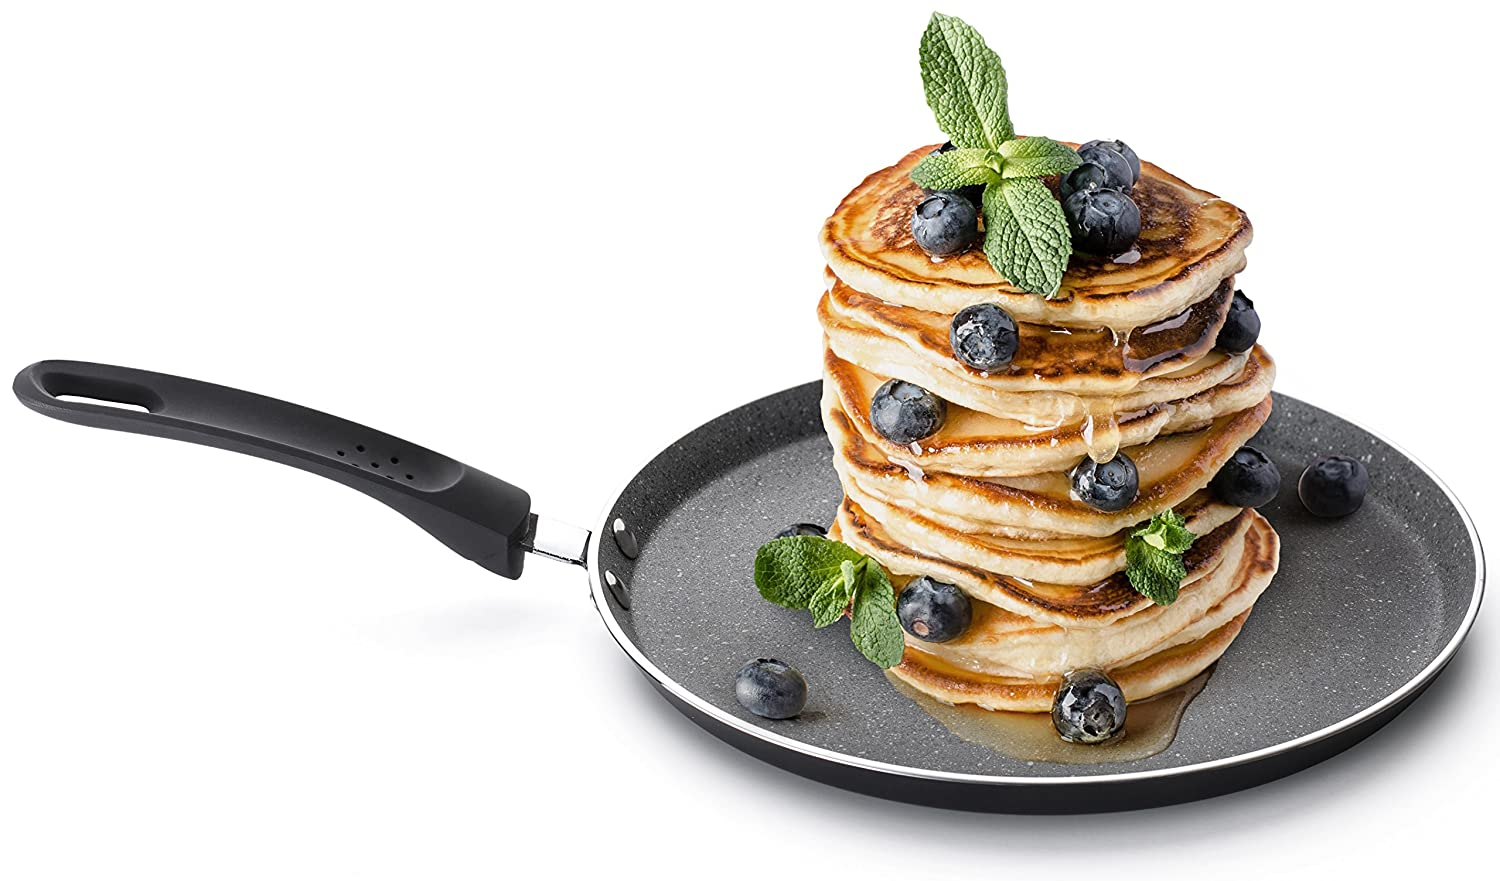 "Crepe Pancake Pan with a Non-Stick Coating Induction 25cm (9.8""), 100% PFOA Free, SoftTouch Handle, Scratch Resistant, All Heat Sources, Perfectly Flat and Easy to Flip by Rosmarino"